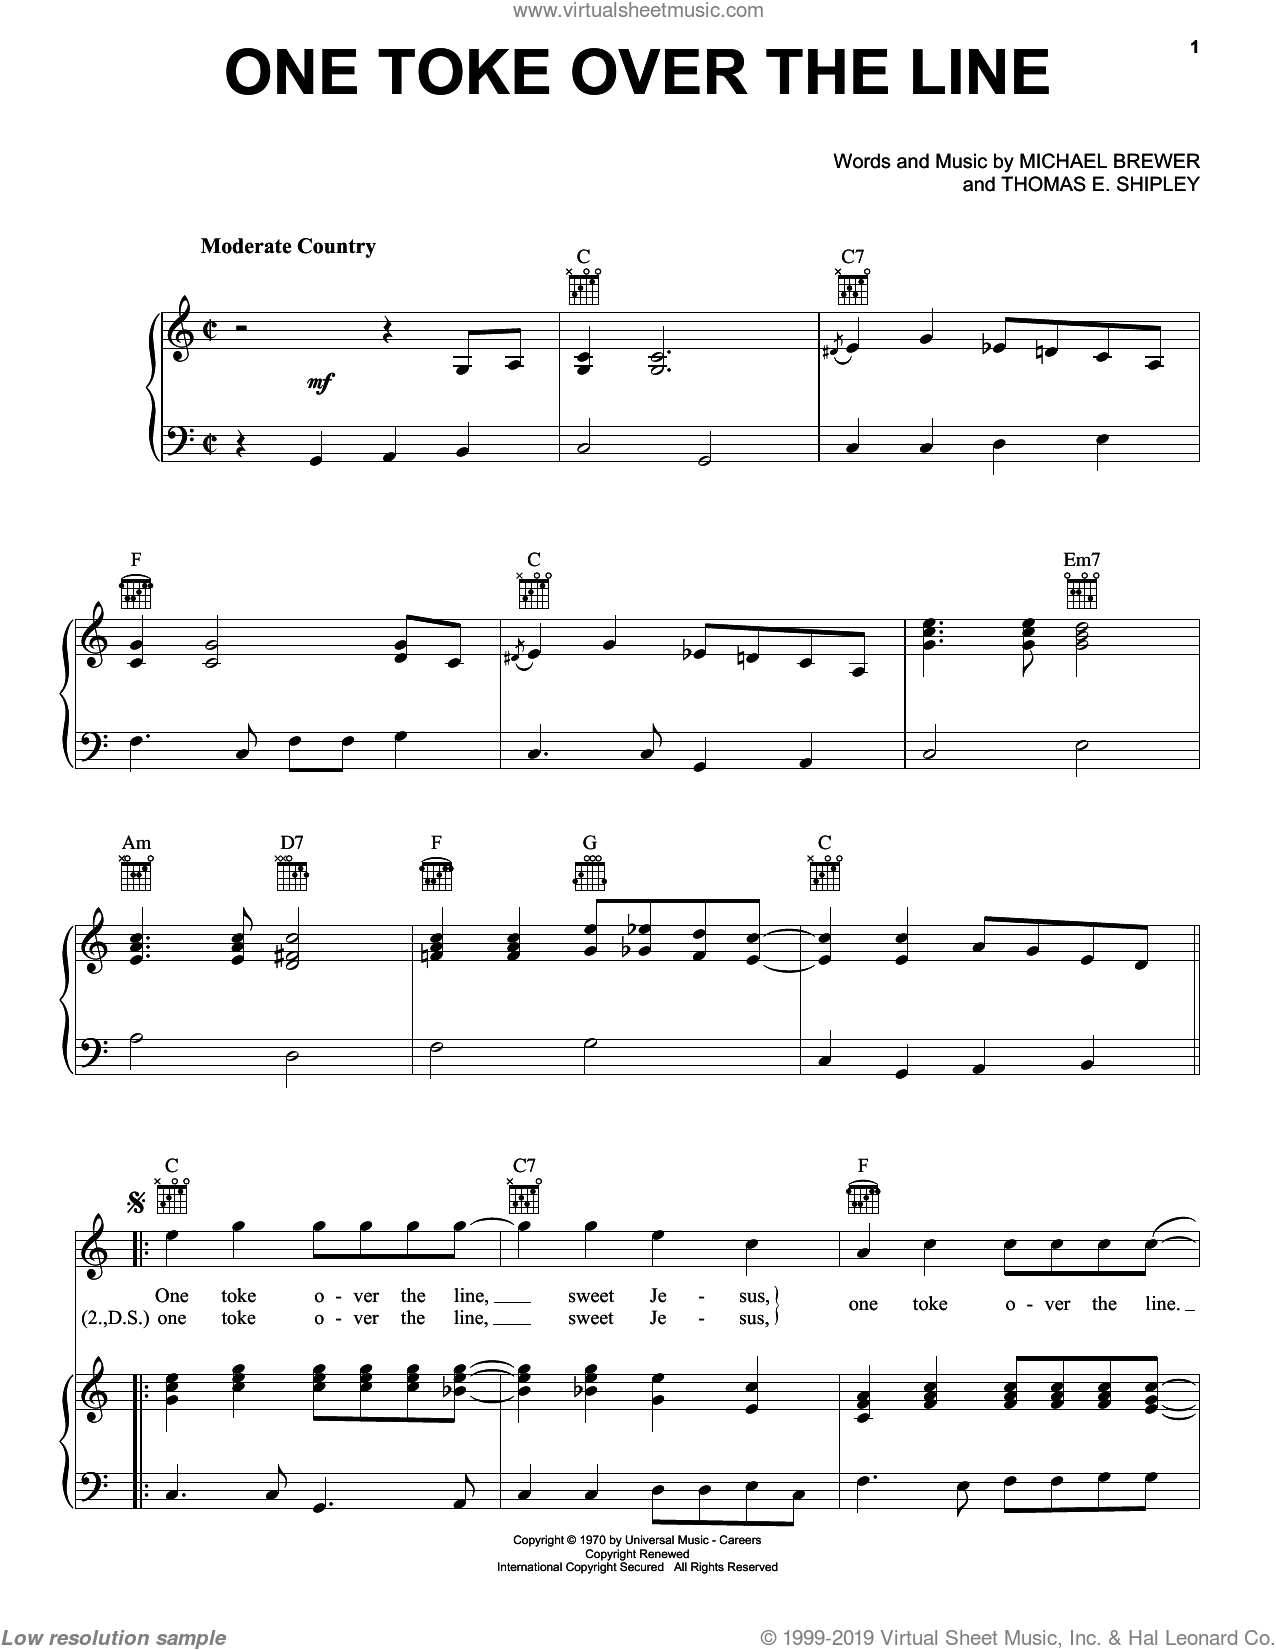 One Toke Over The Line sheet music for voice, piano or guitar by Thomas E. Shipley